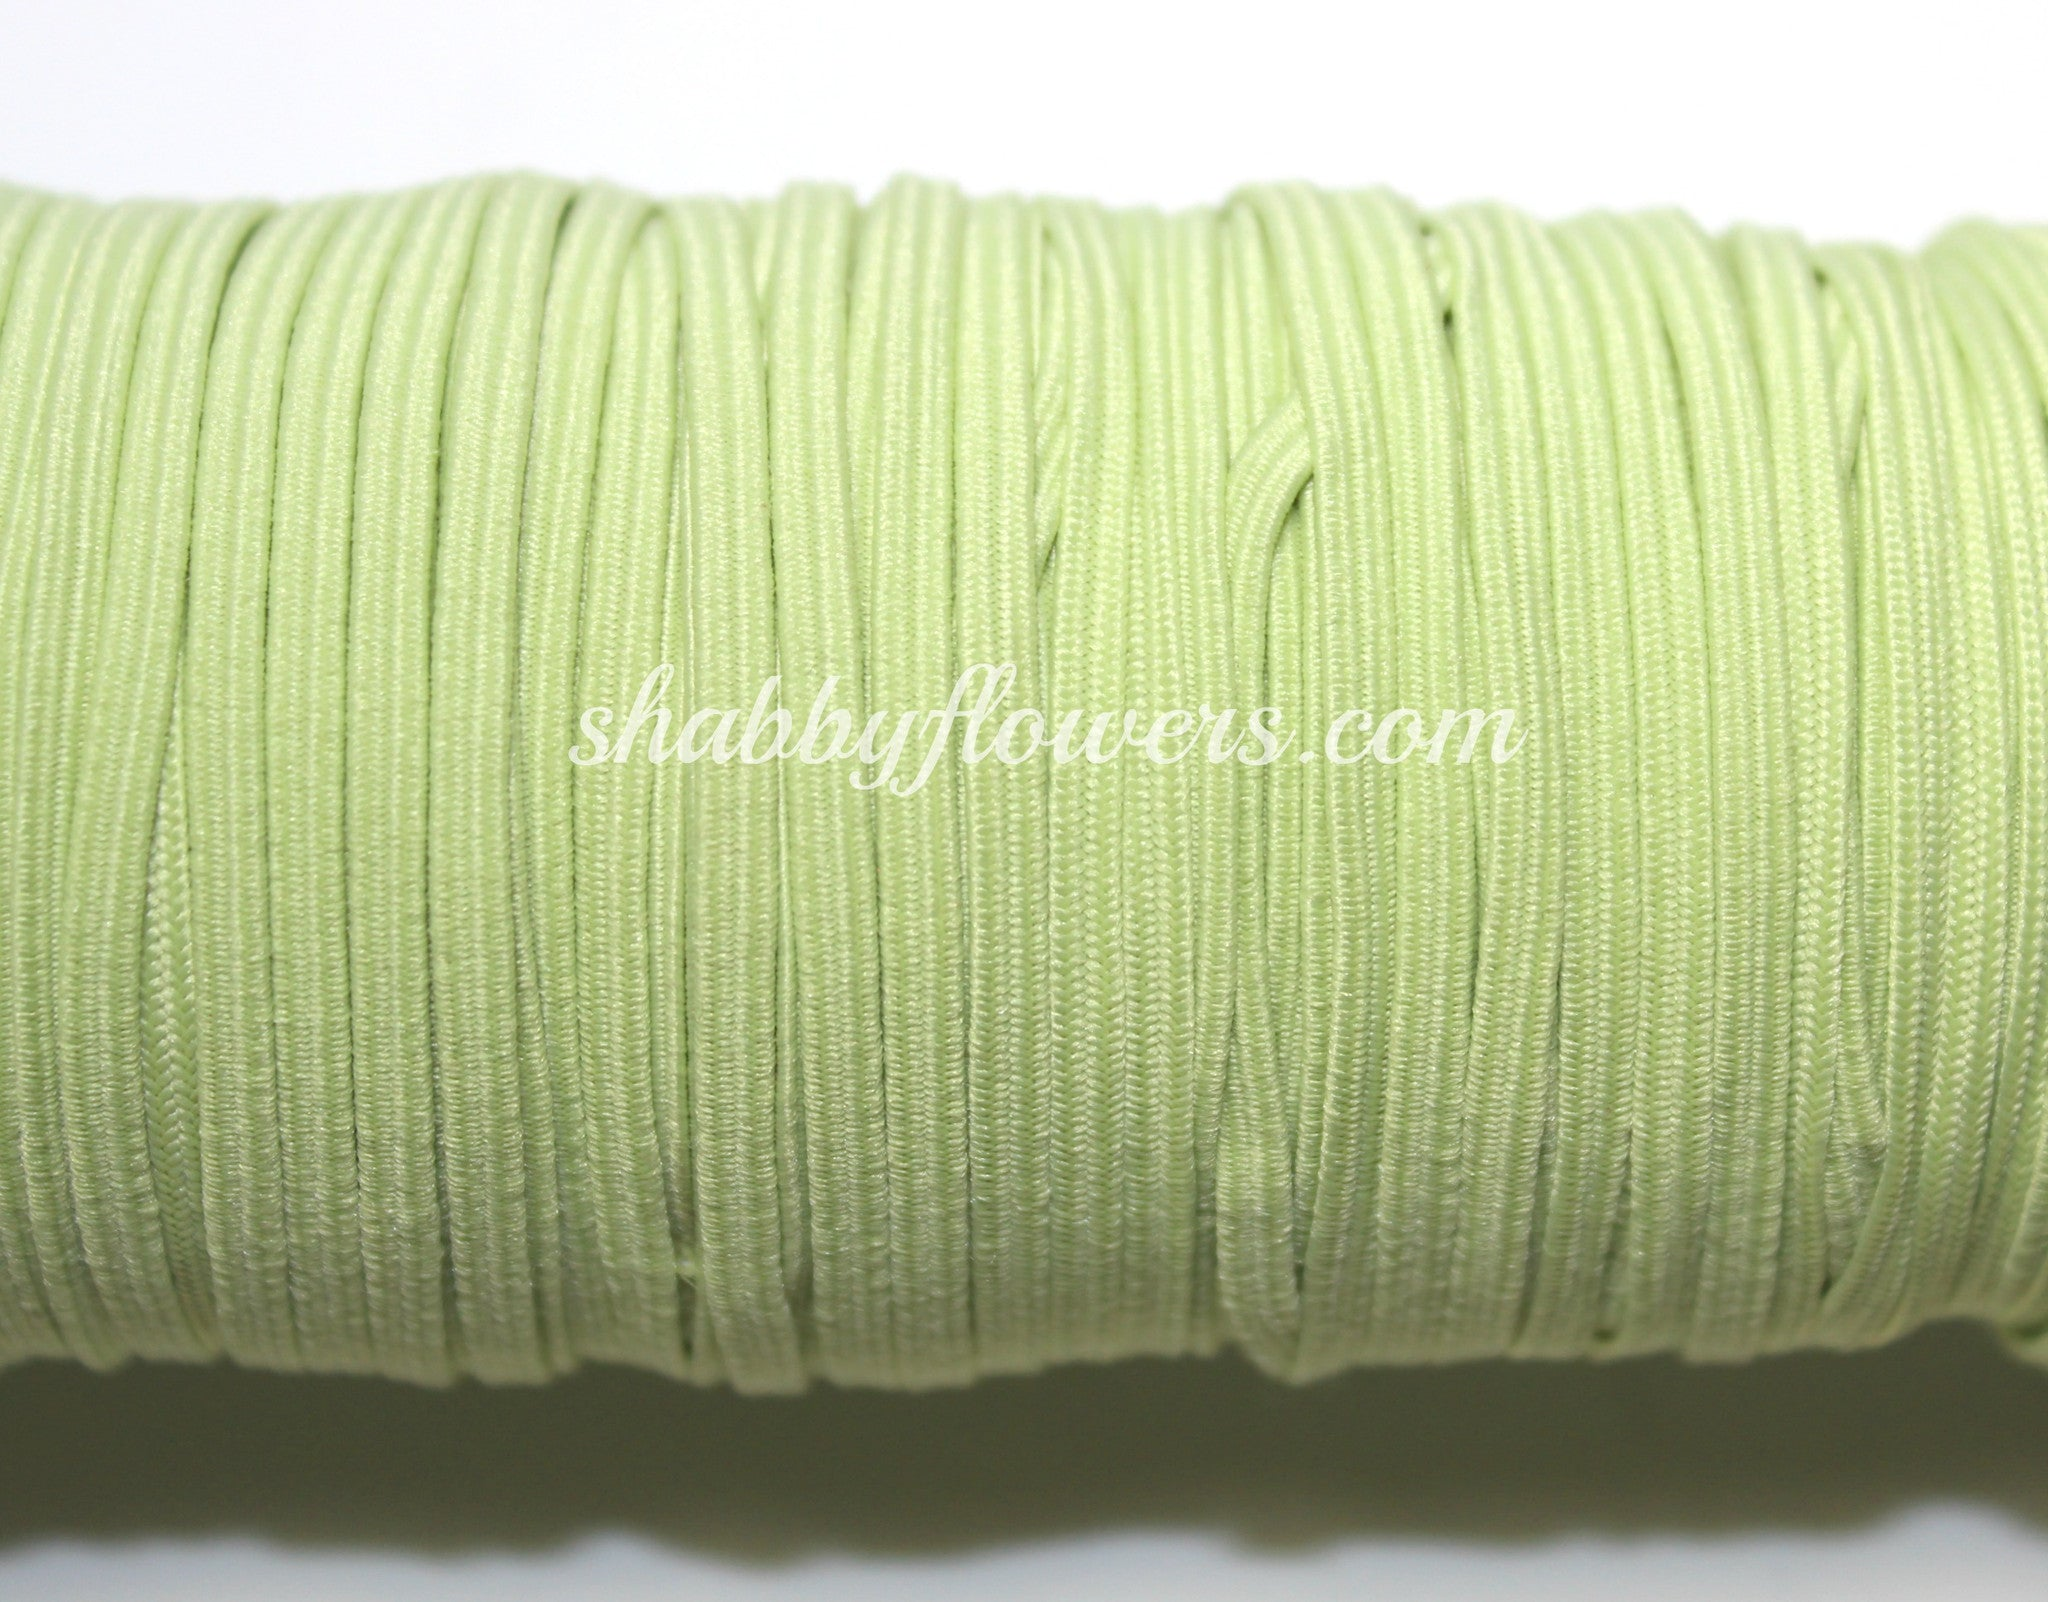 Skinny Elastic - Key Lime - shabbyflowers.com